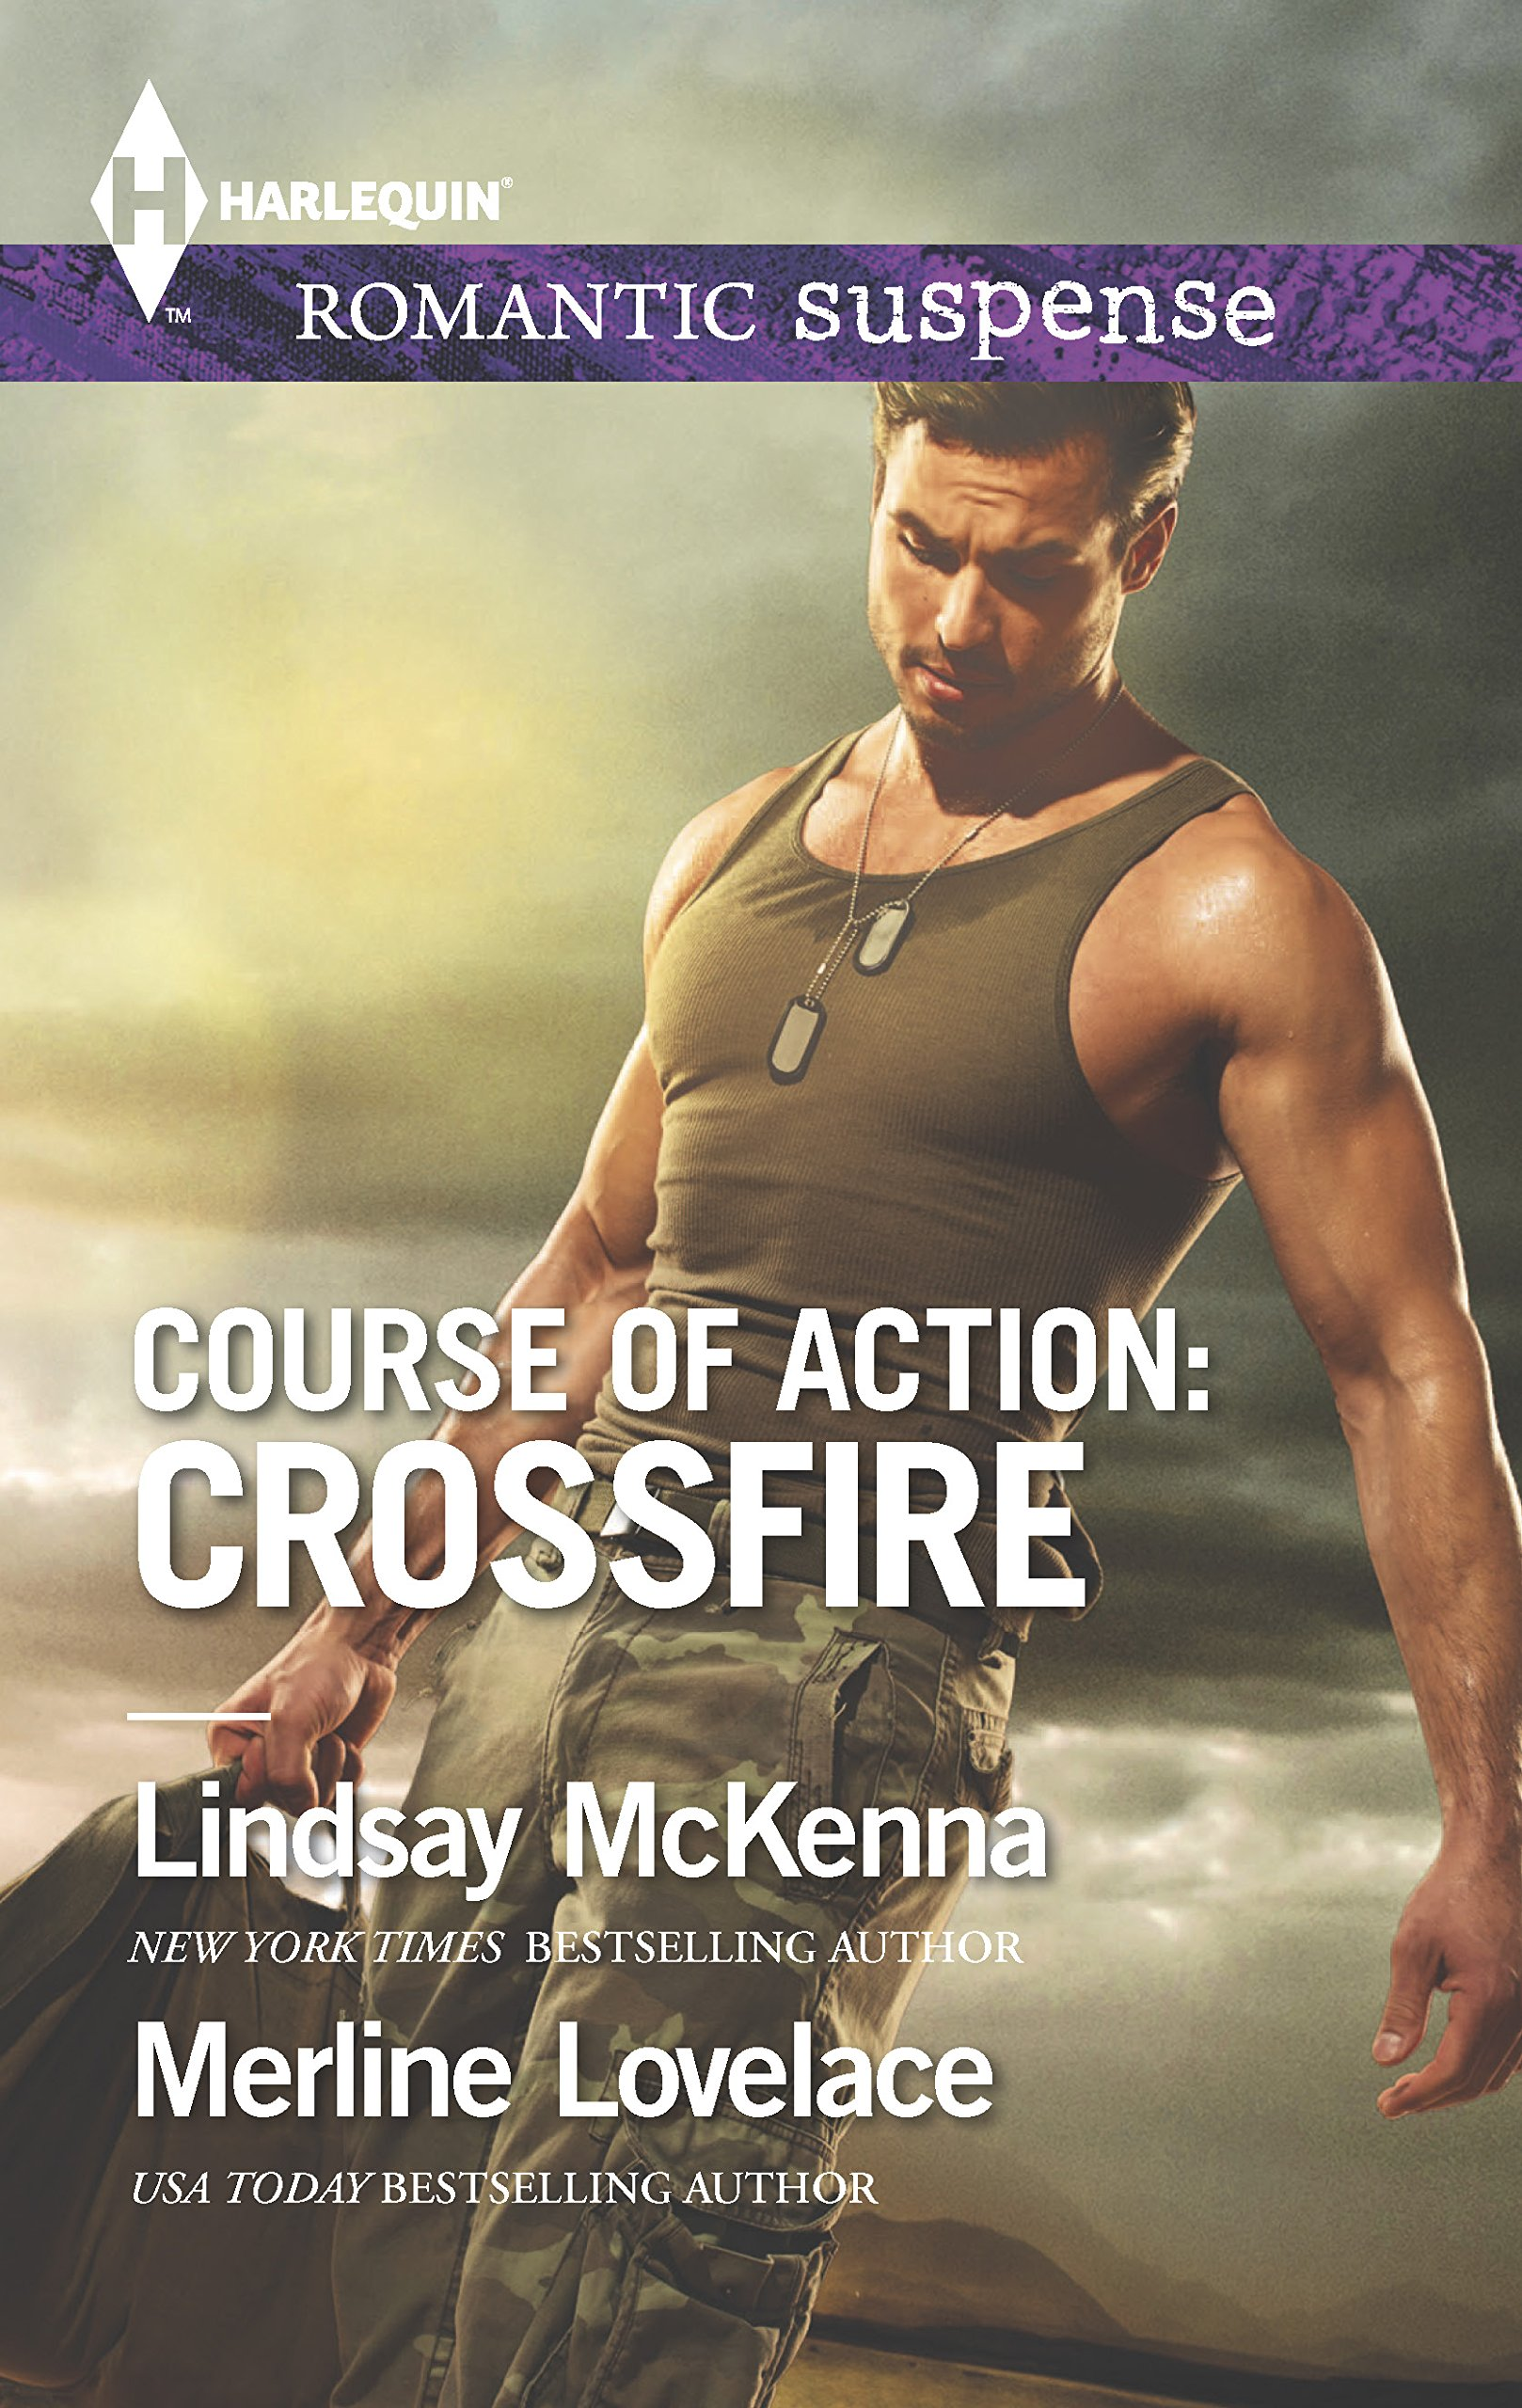 Course of Action: Crossfire (Harlequin Romantic Suspense) by Harlequin Romantic Suspense